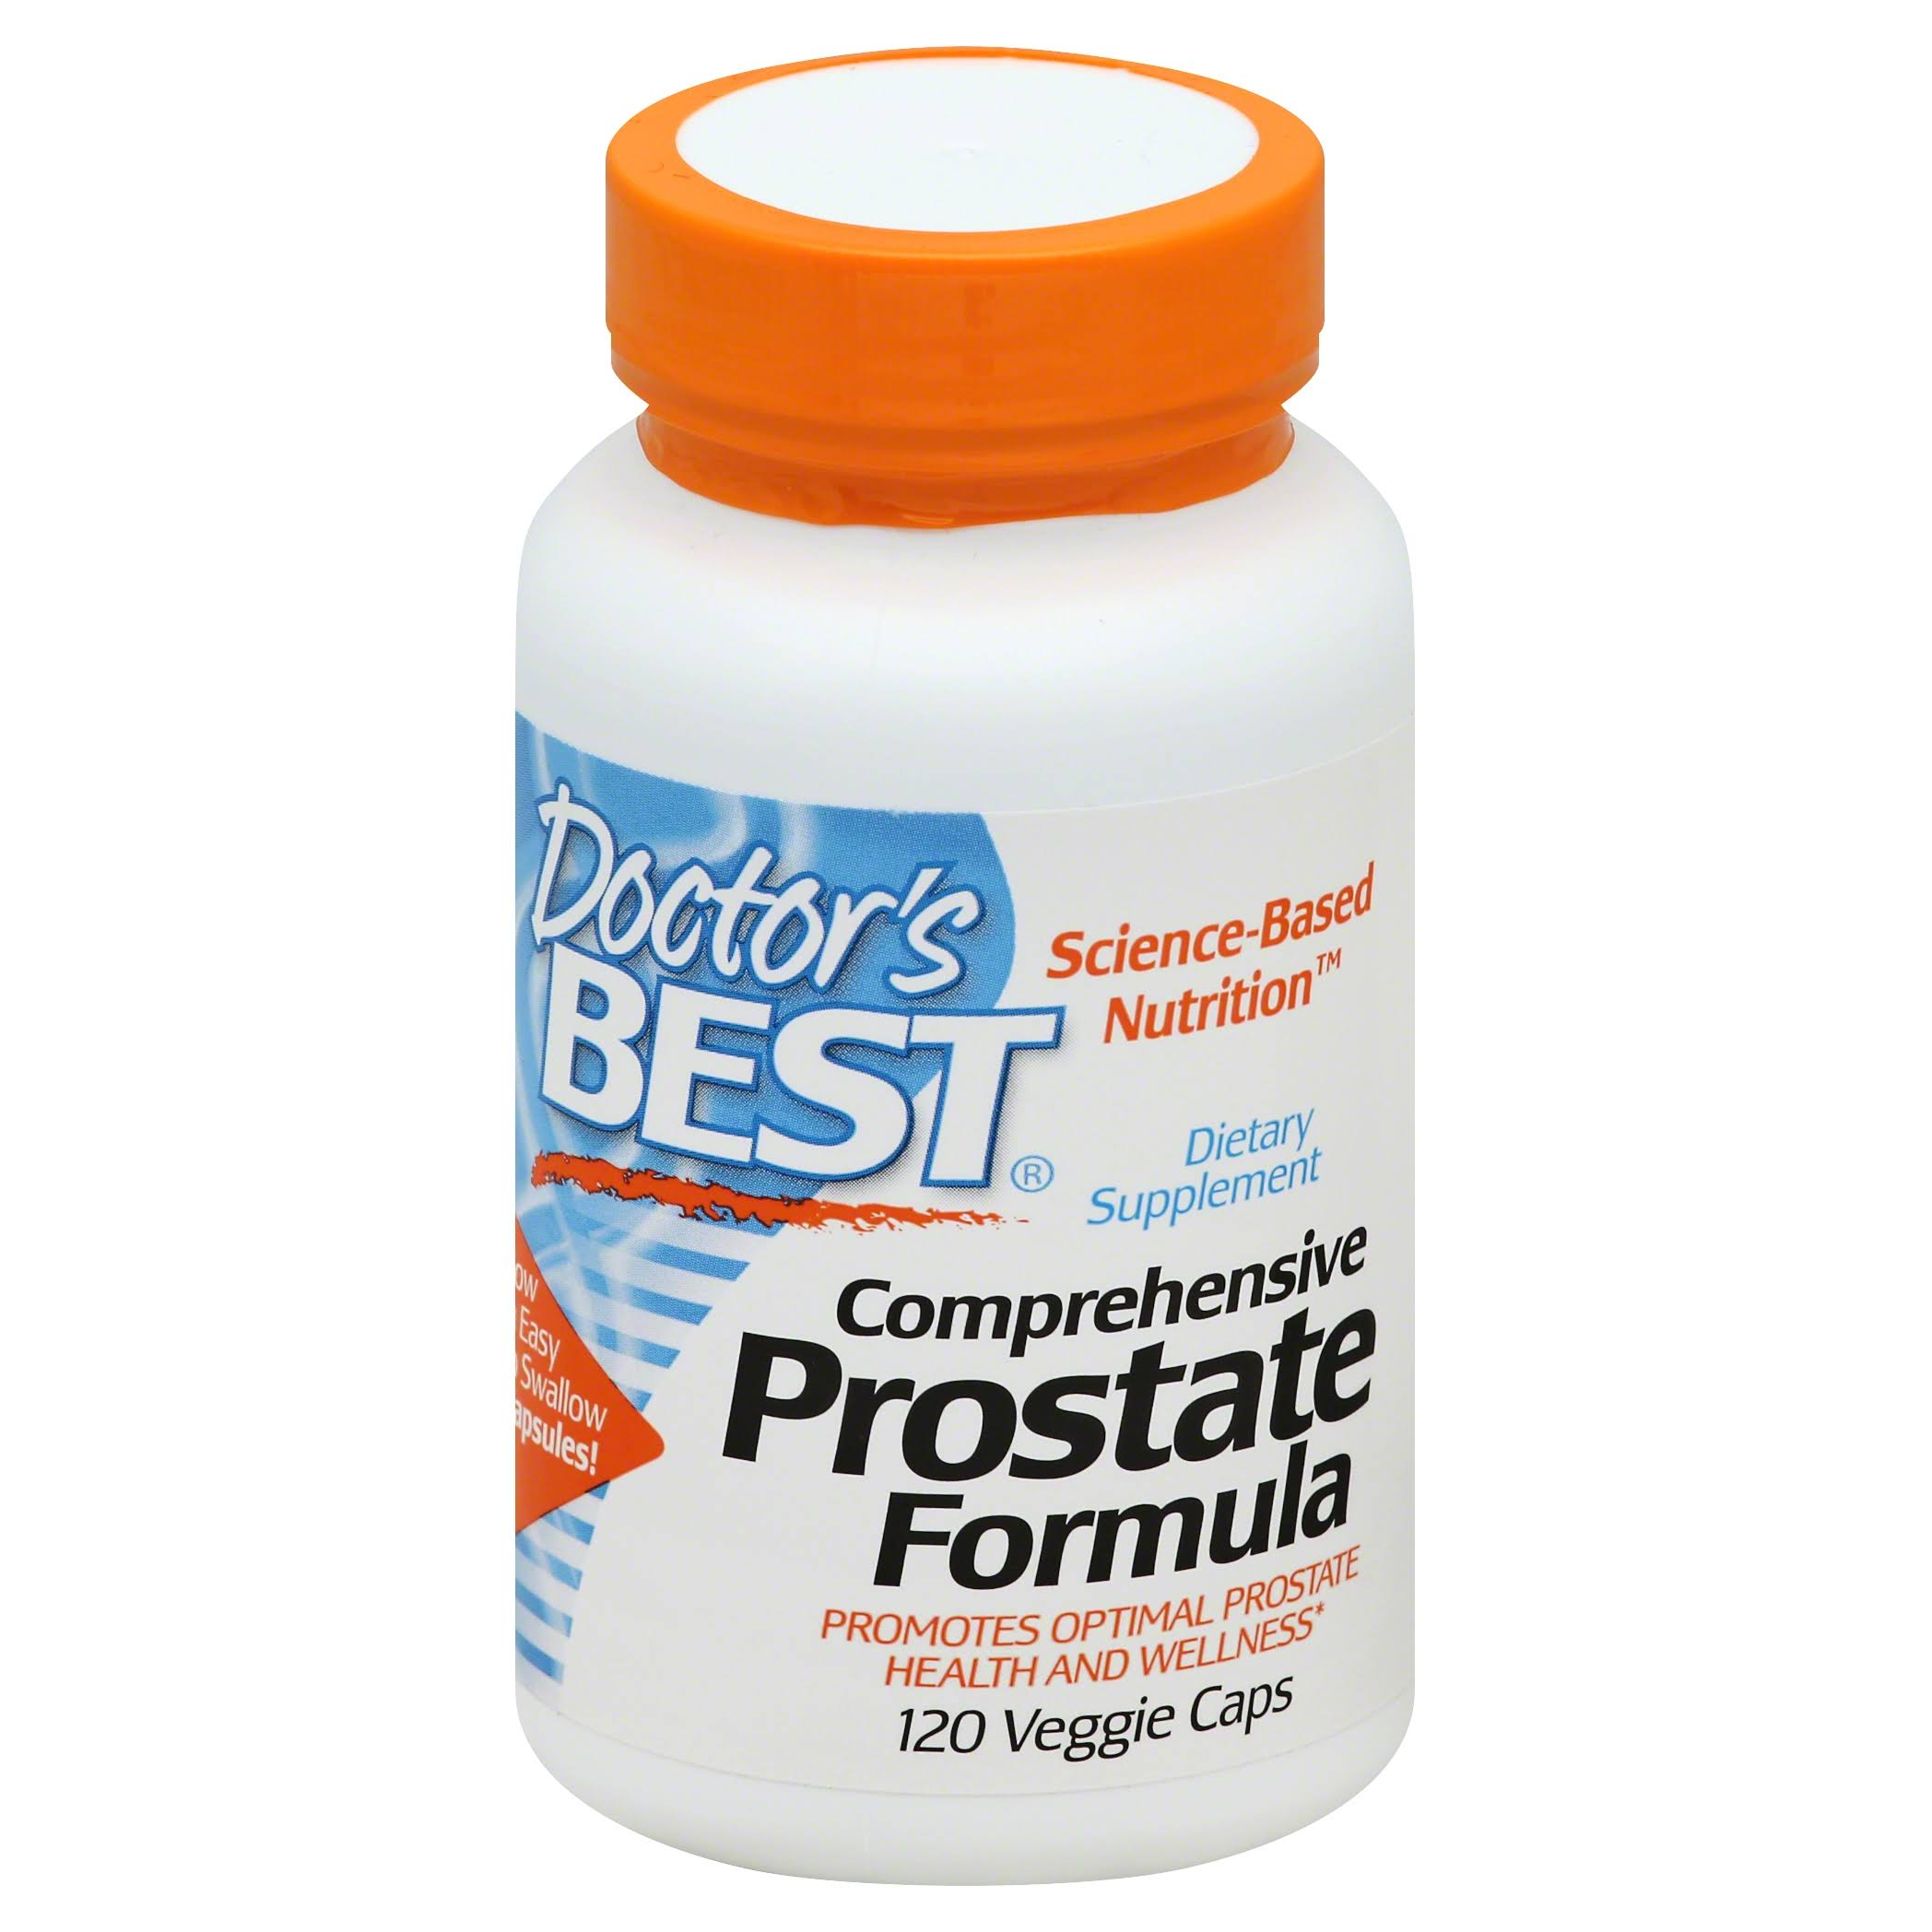 Doctor's Best Comprehensive Prostate Formula - 120 Veggie Caps